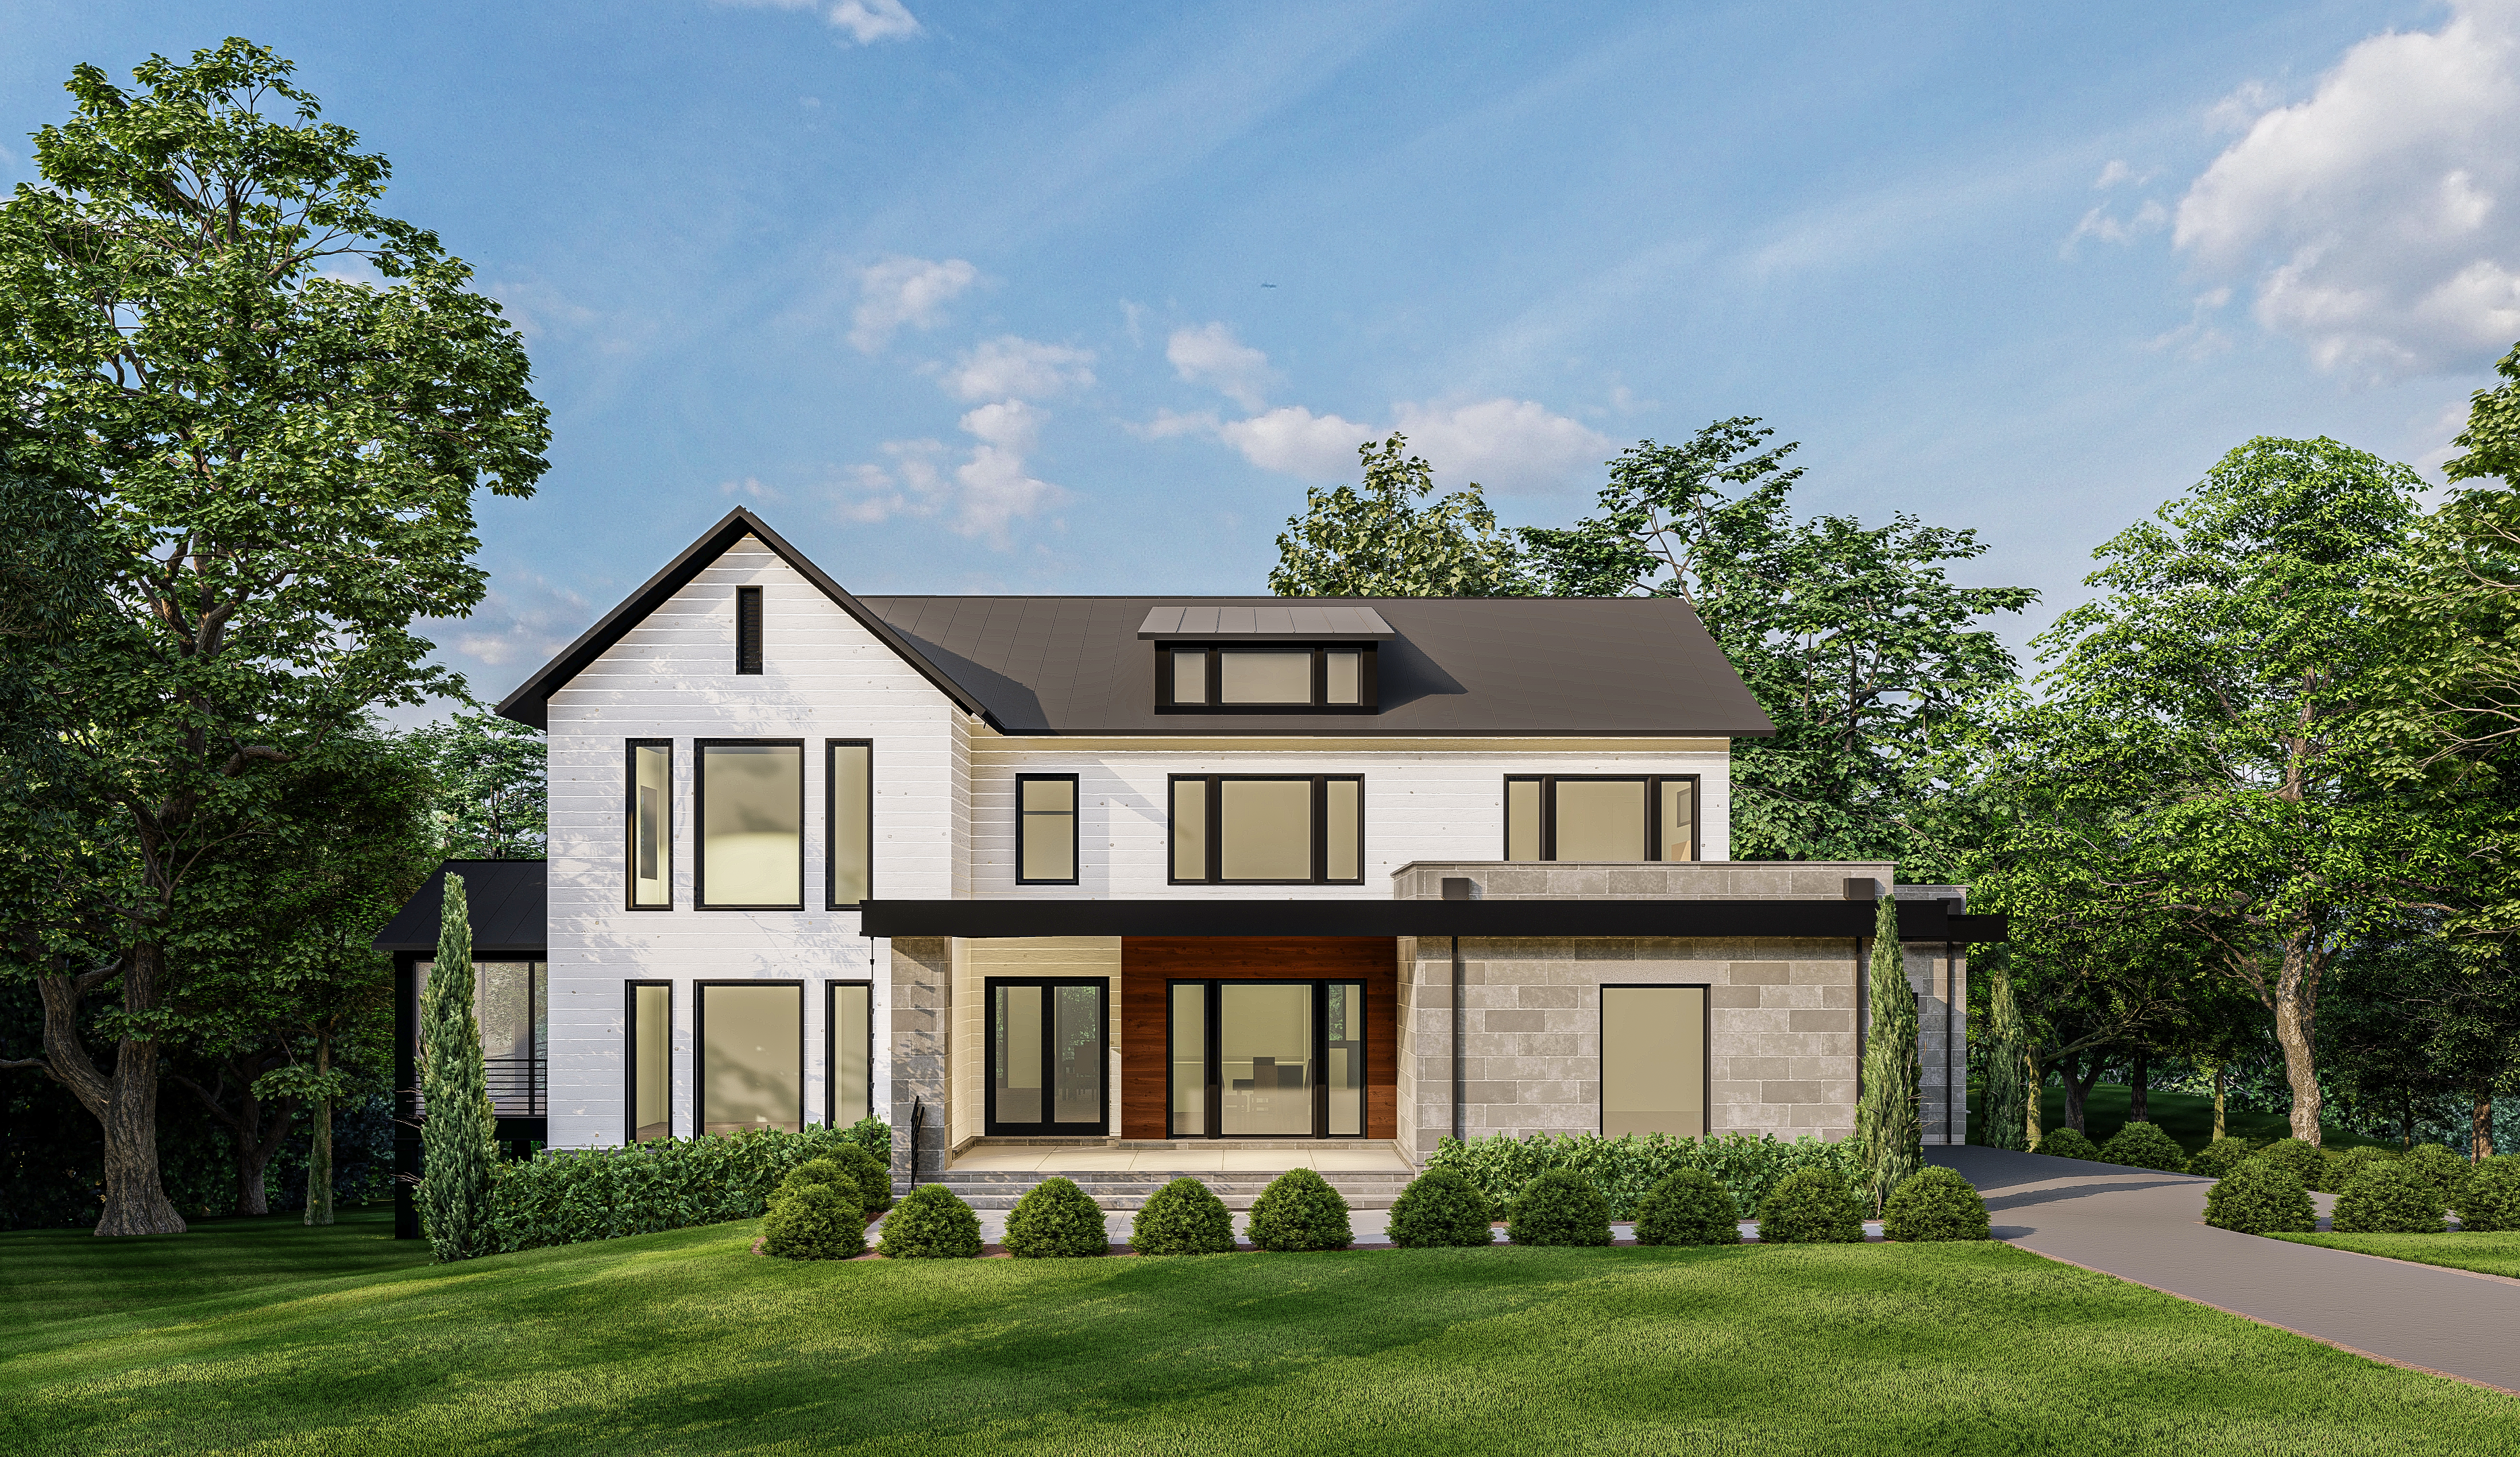 Incredible Opportunity to Build a Home in Oakton,VA